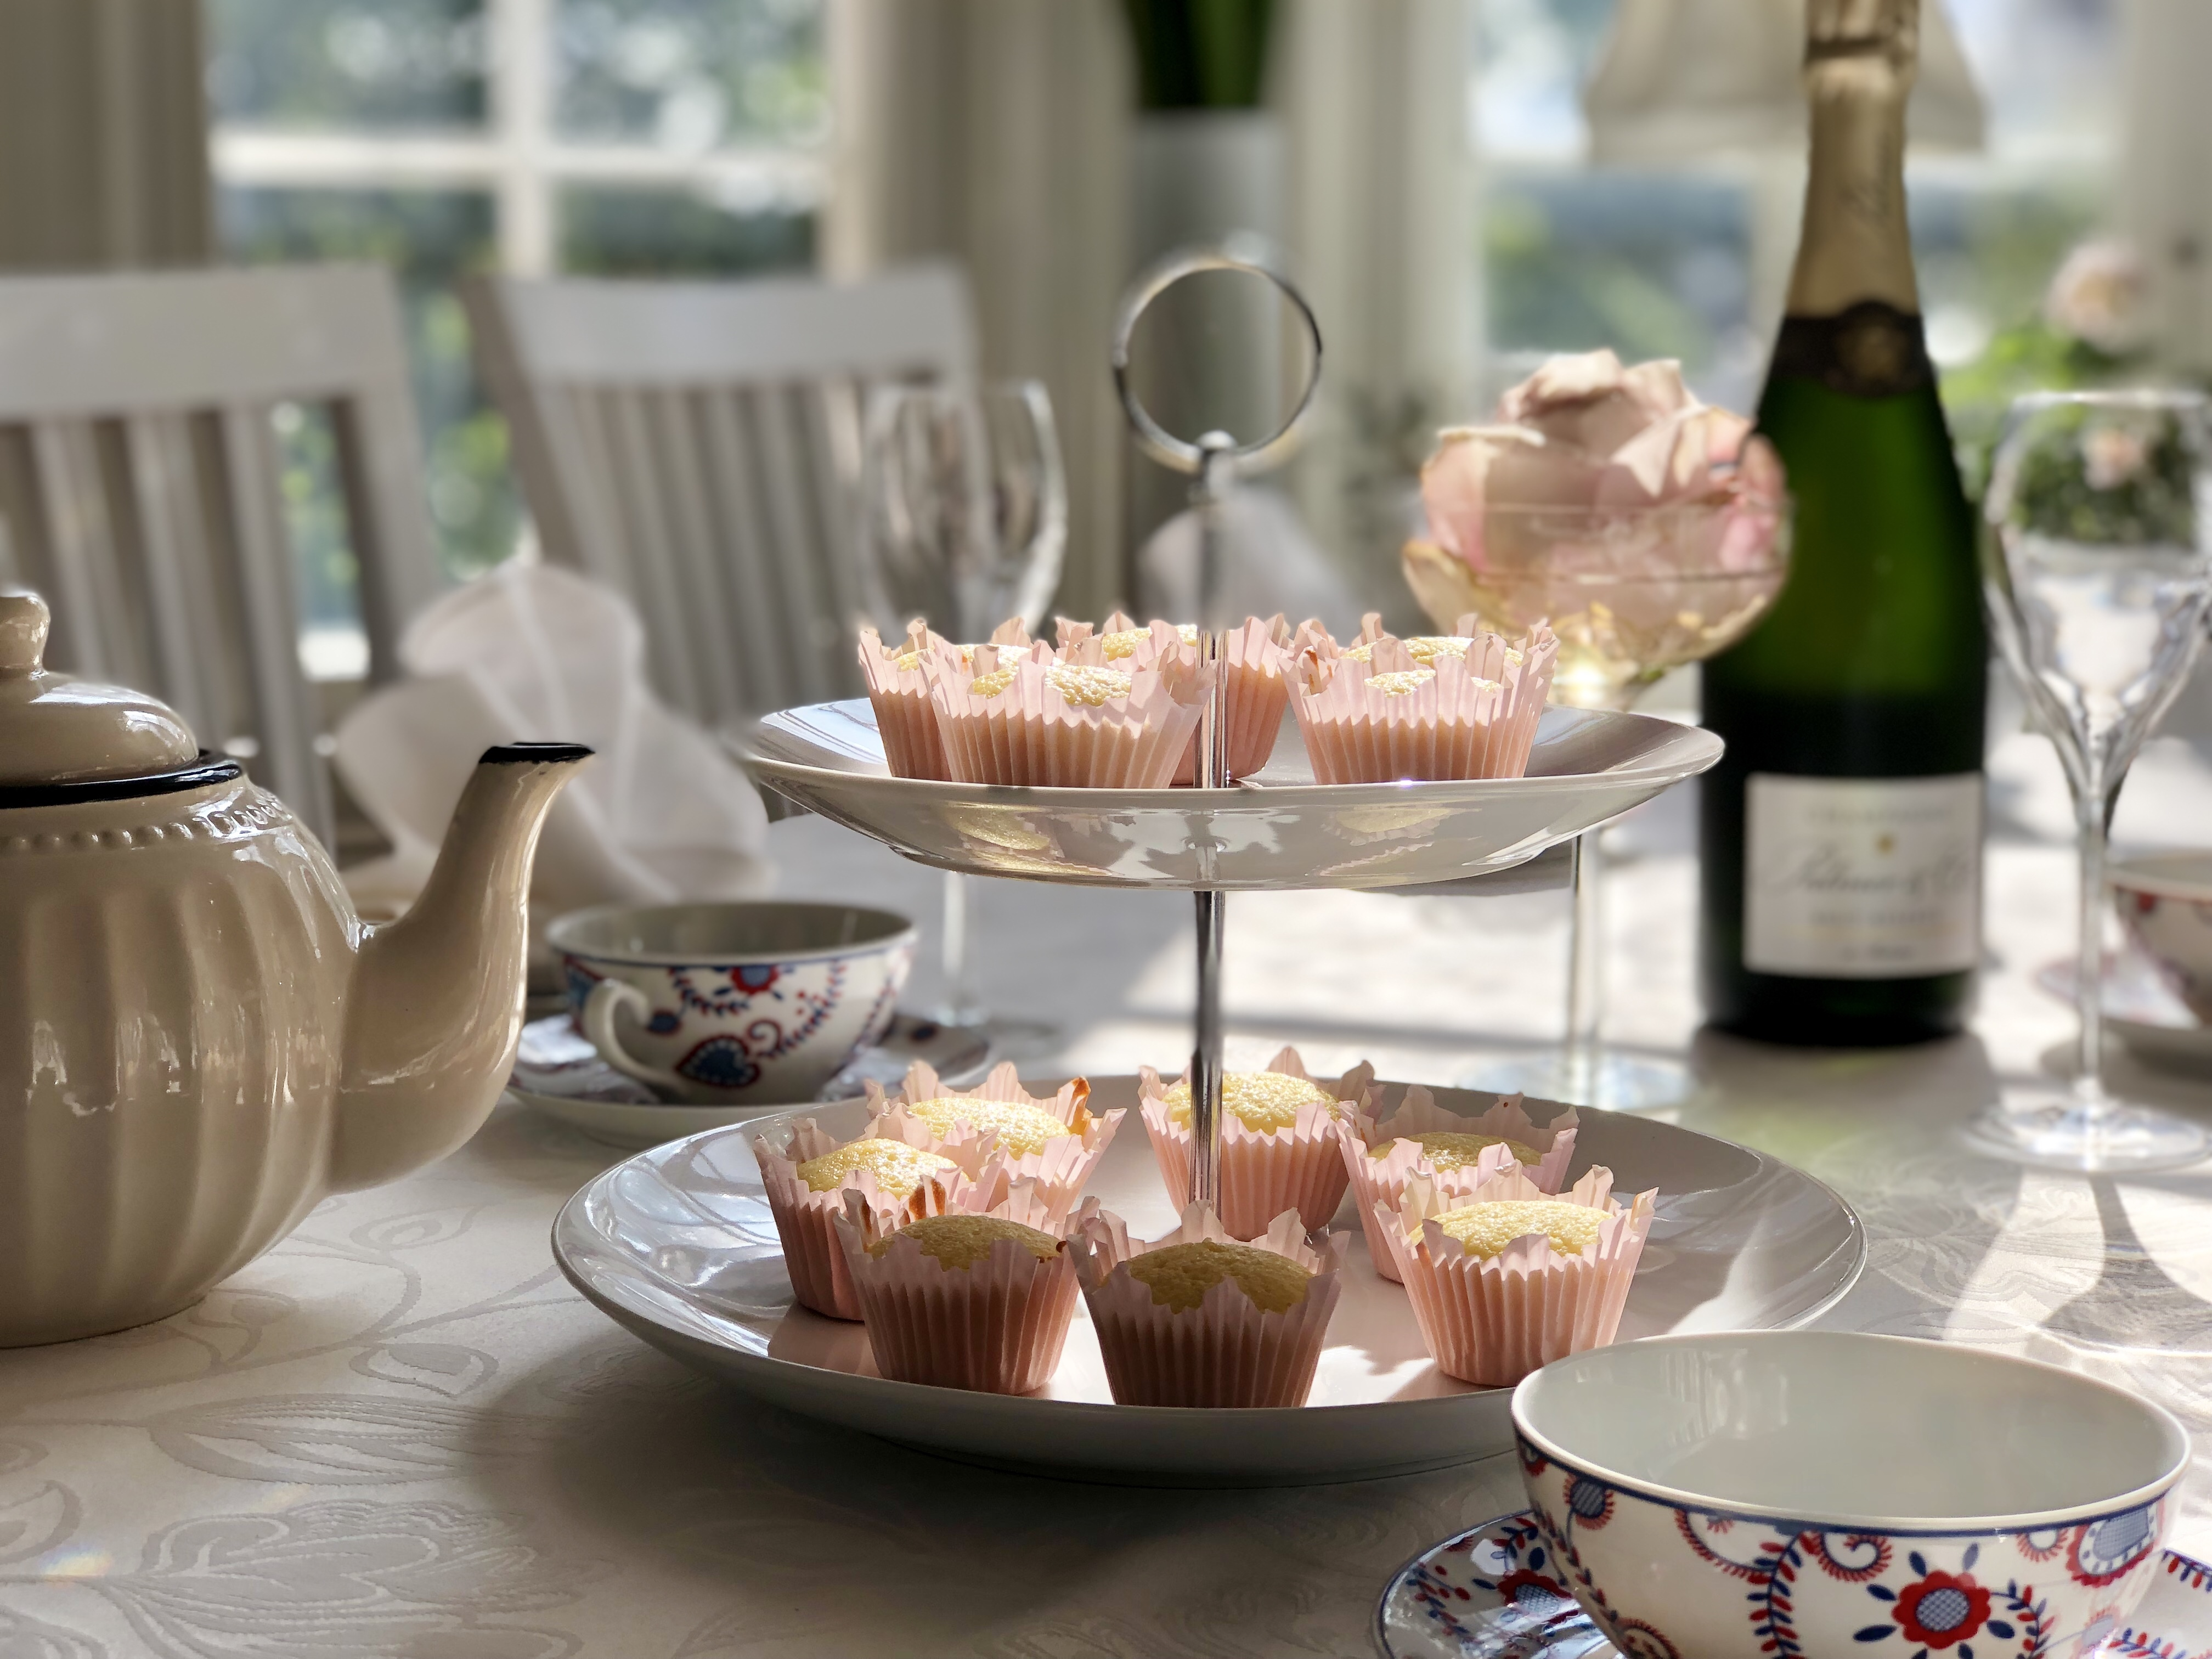 Afternoon Tea snittar muffins scones champagne